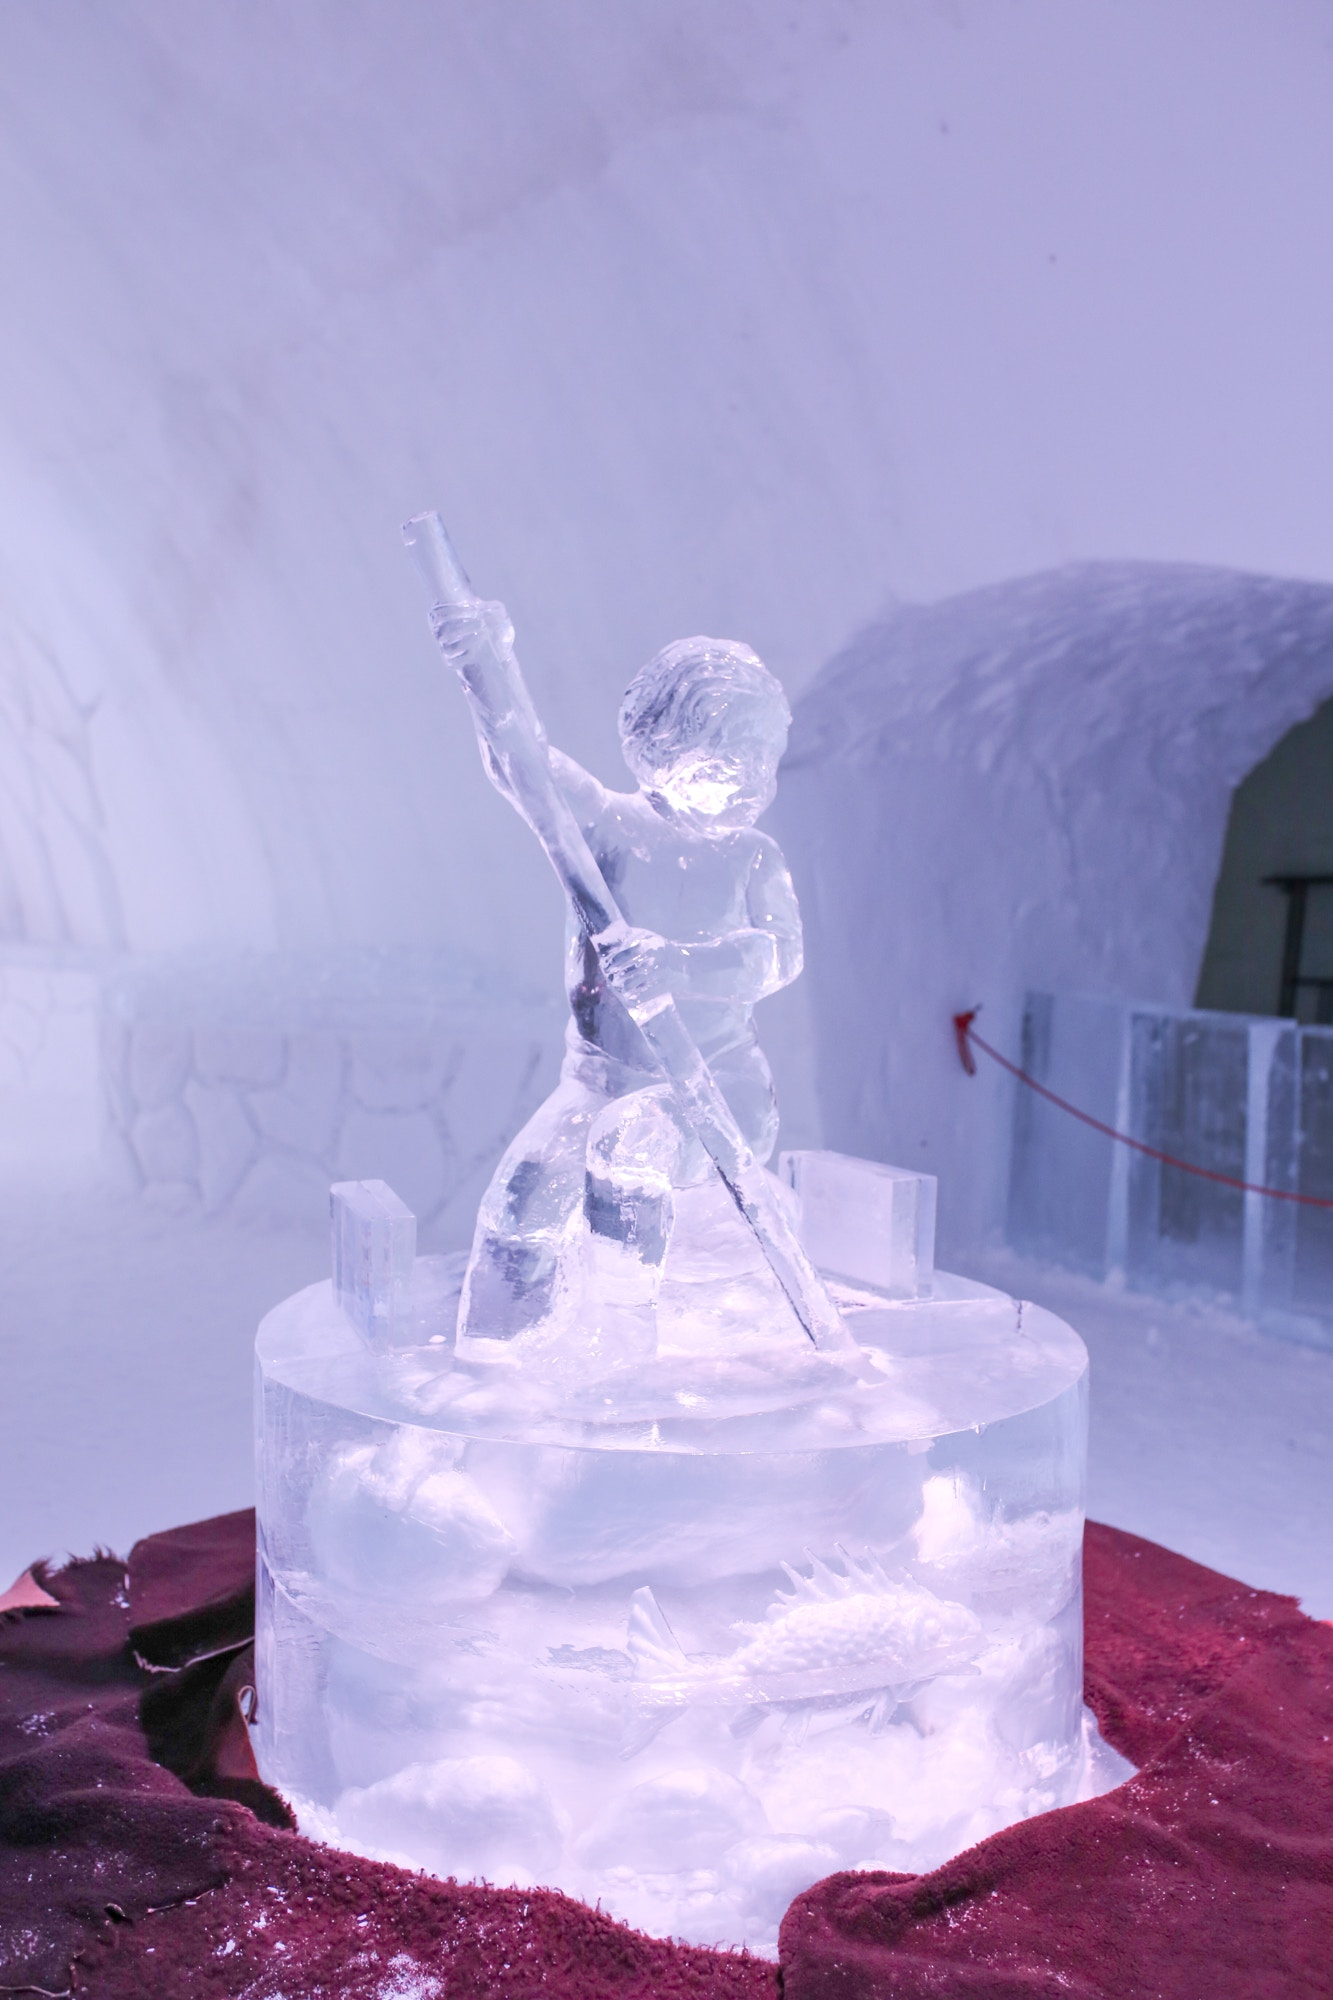 Ice sculptures are so beautiful and expertly crafted at the Hotel de Glâce near Quebec City.